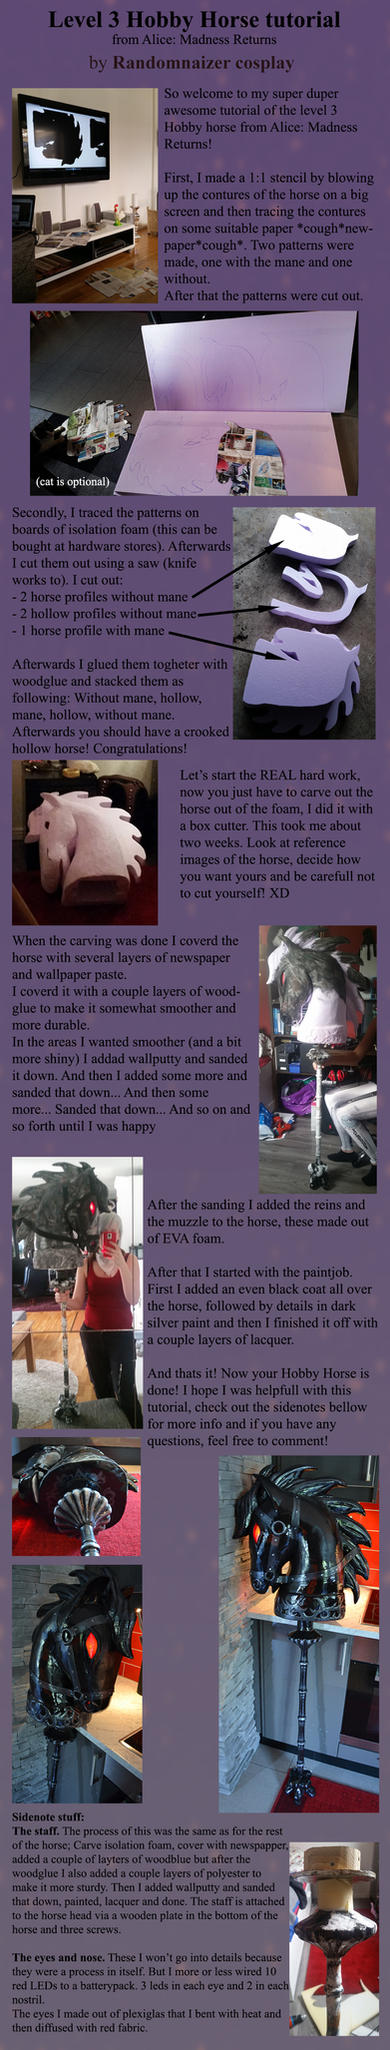 Hobby Horse Tutorial by Randomnaizer